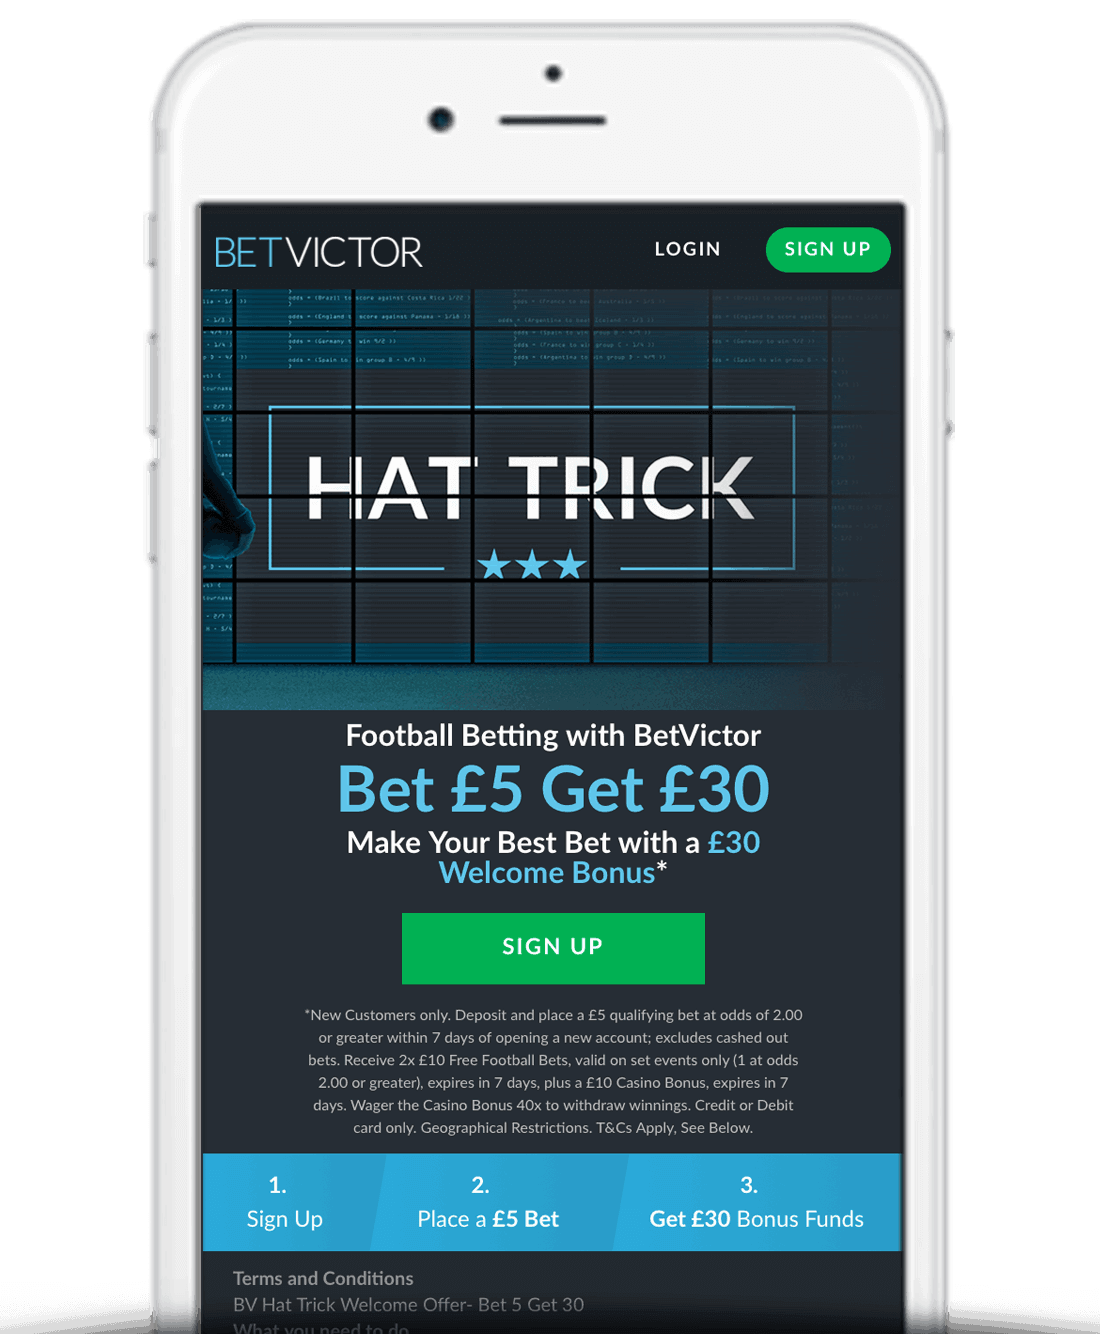 Betvictor mobile betting games us golf open 2021 betting line